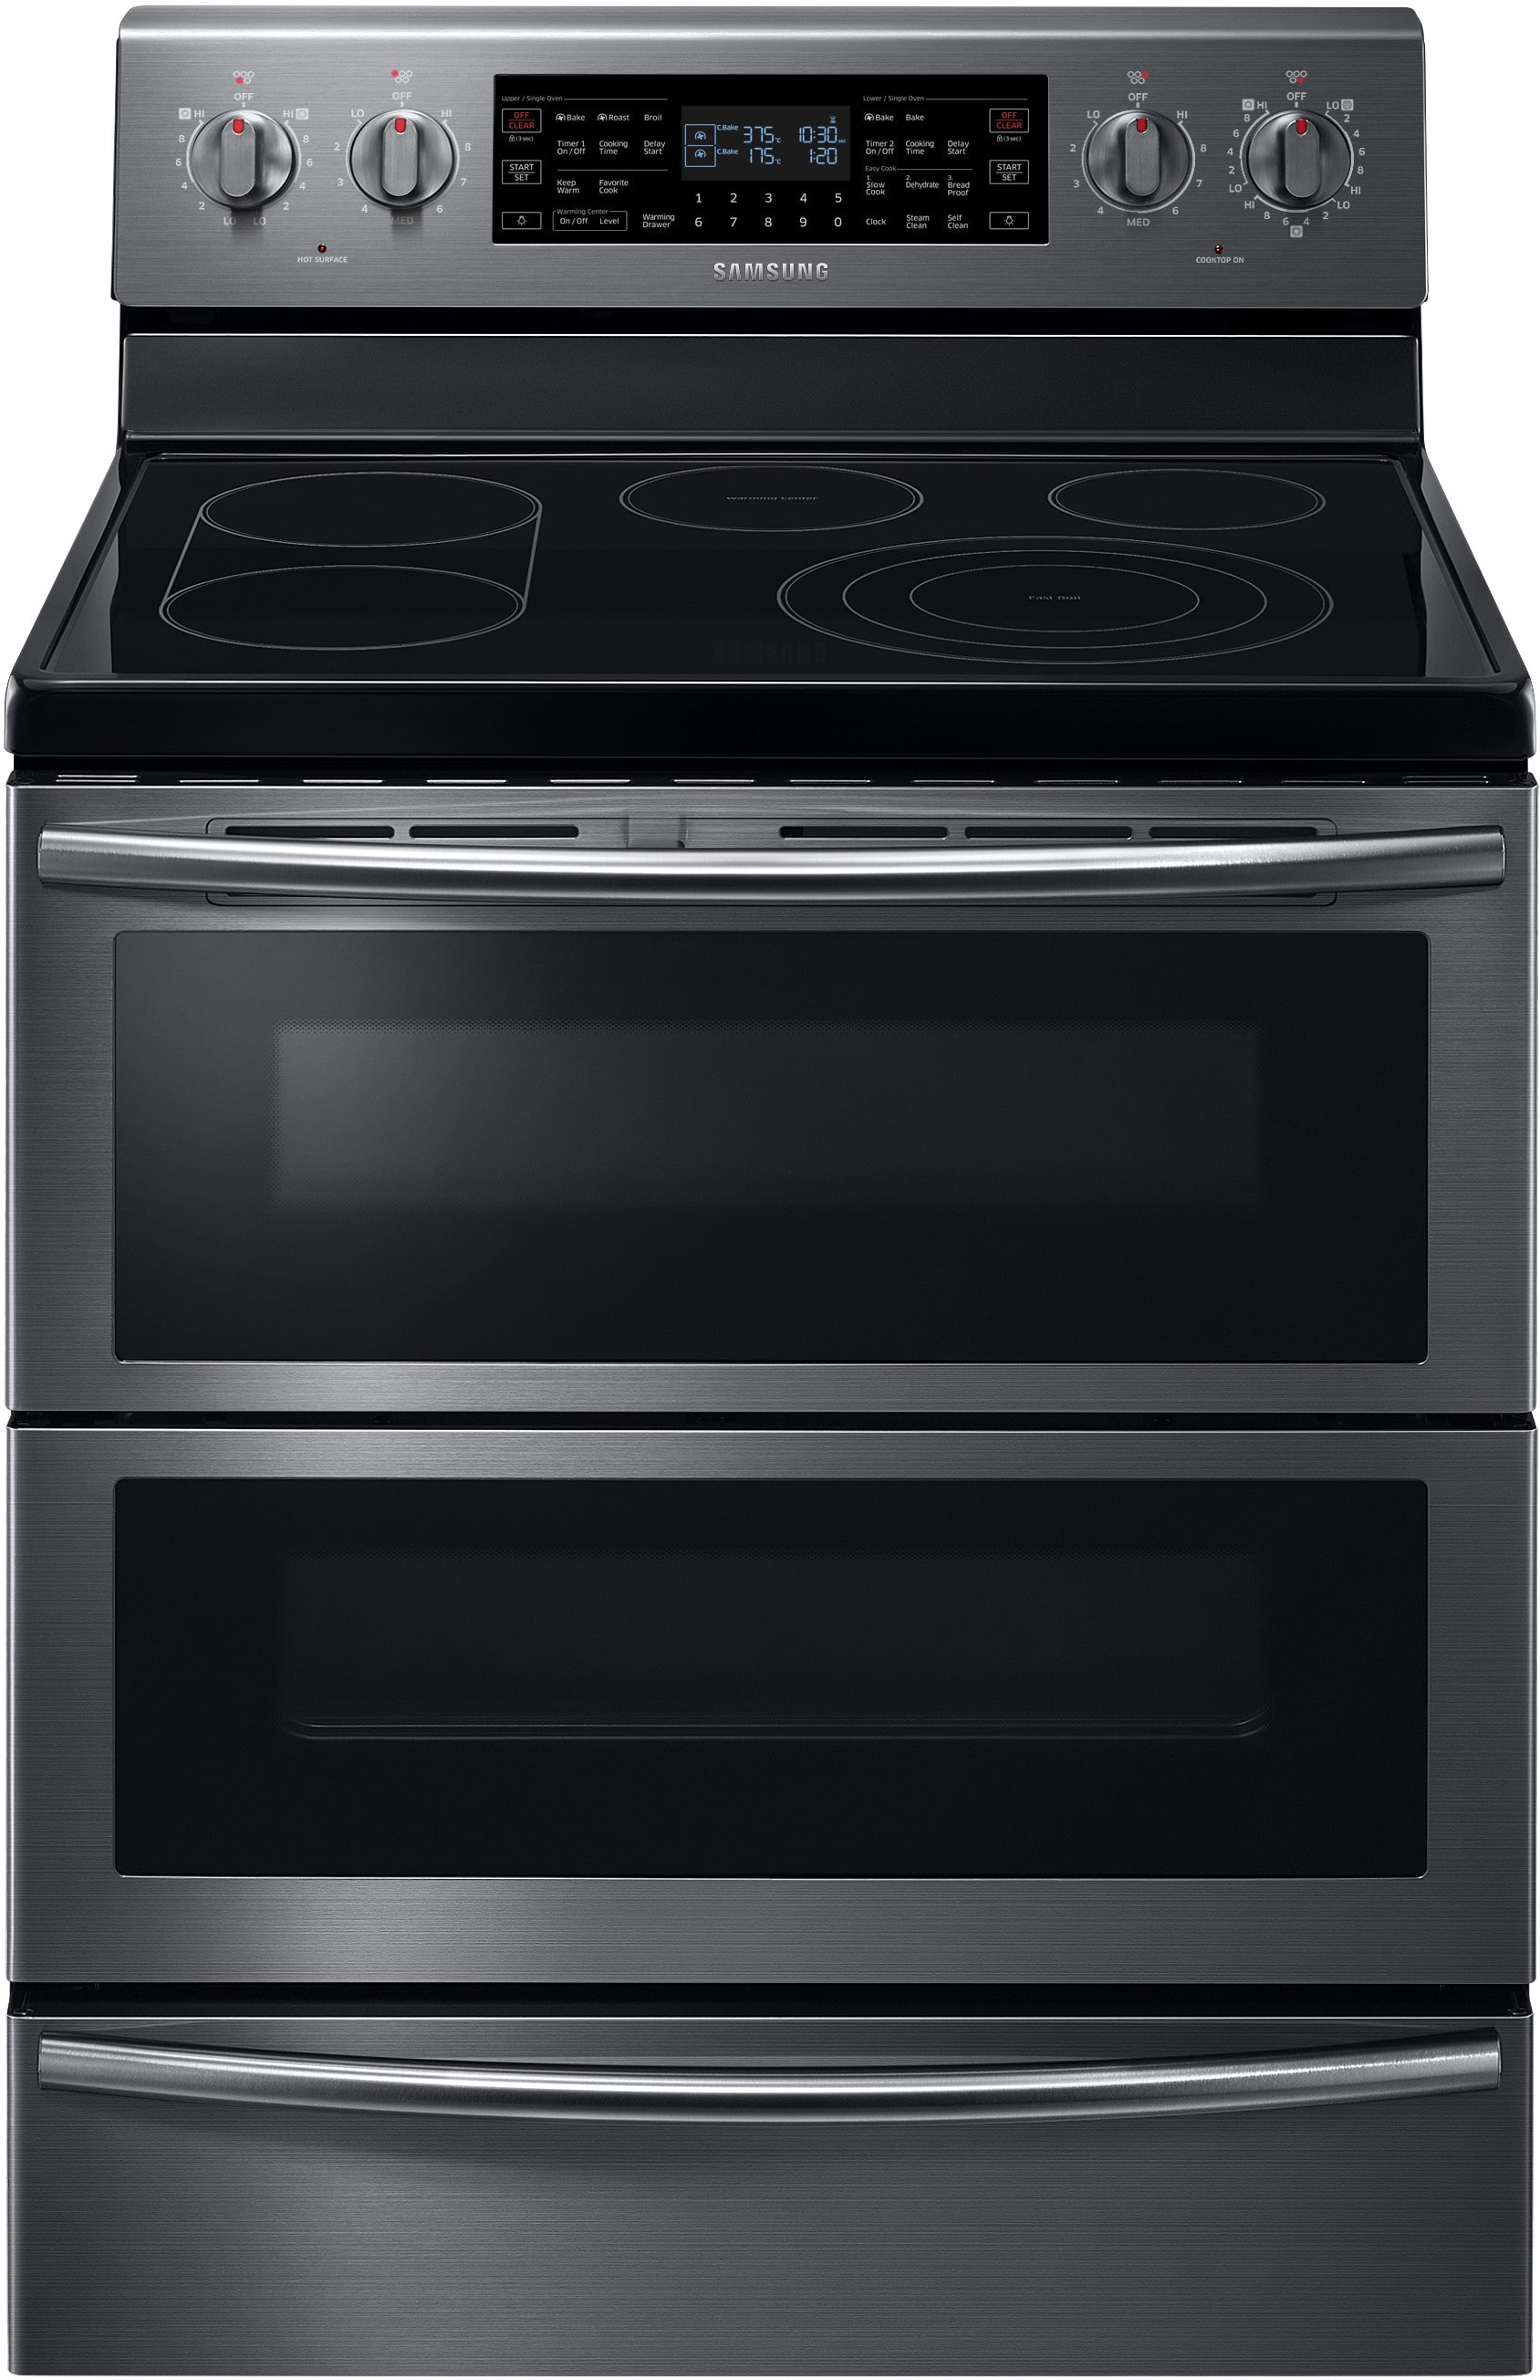 Samsung NE59J7850WG 30 Inch Freestanding Electric Range with 5 9 cu